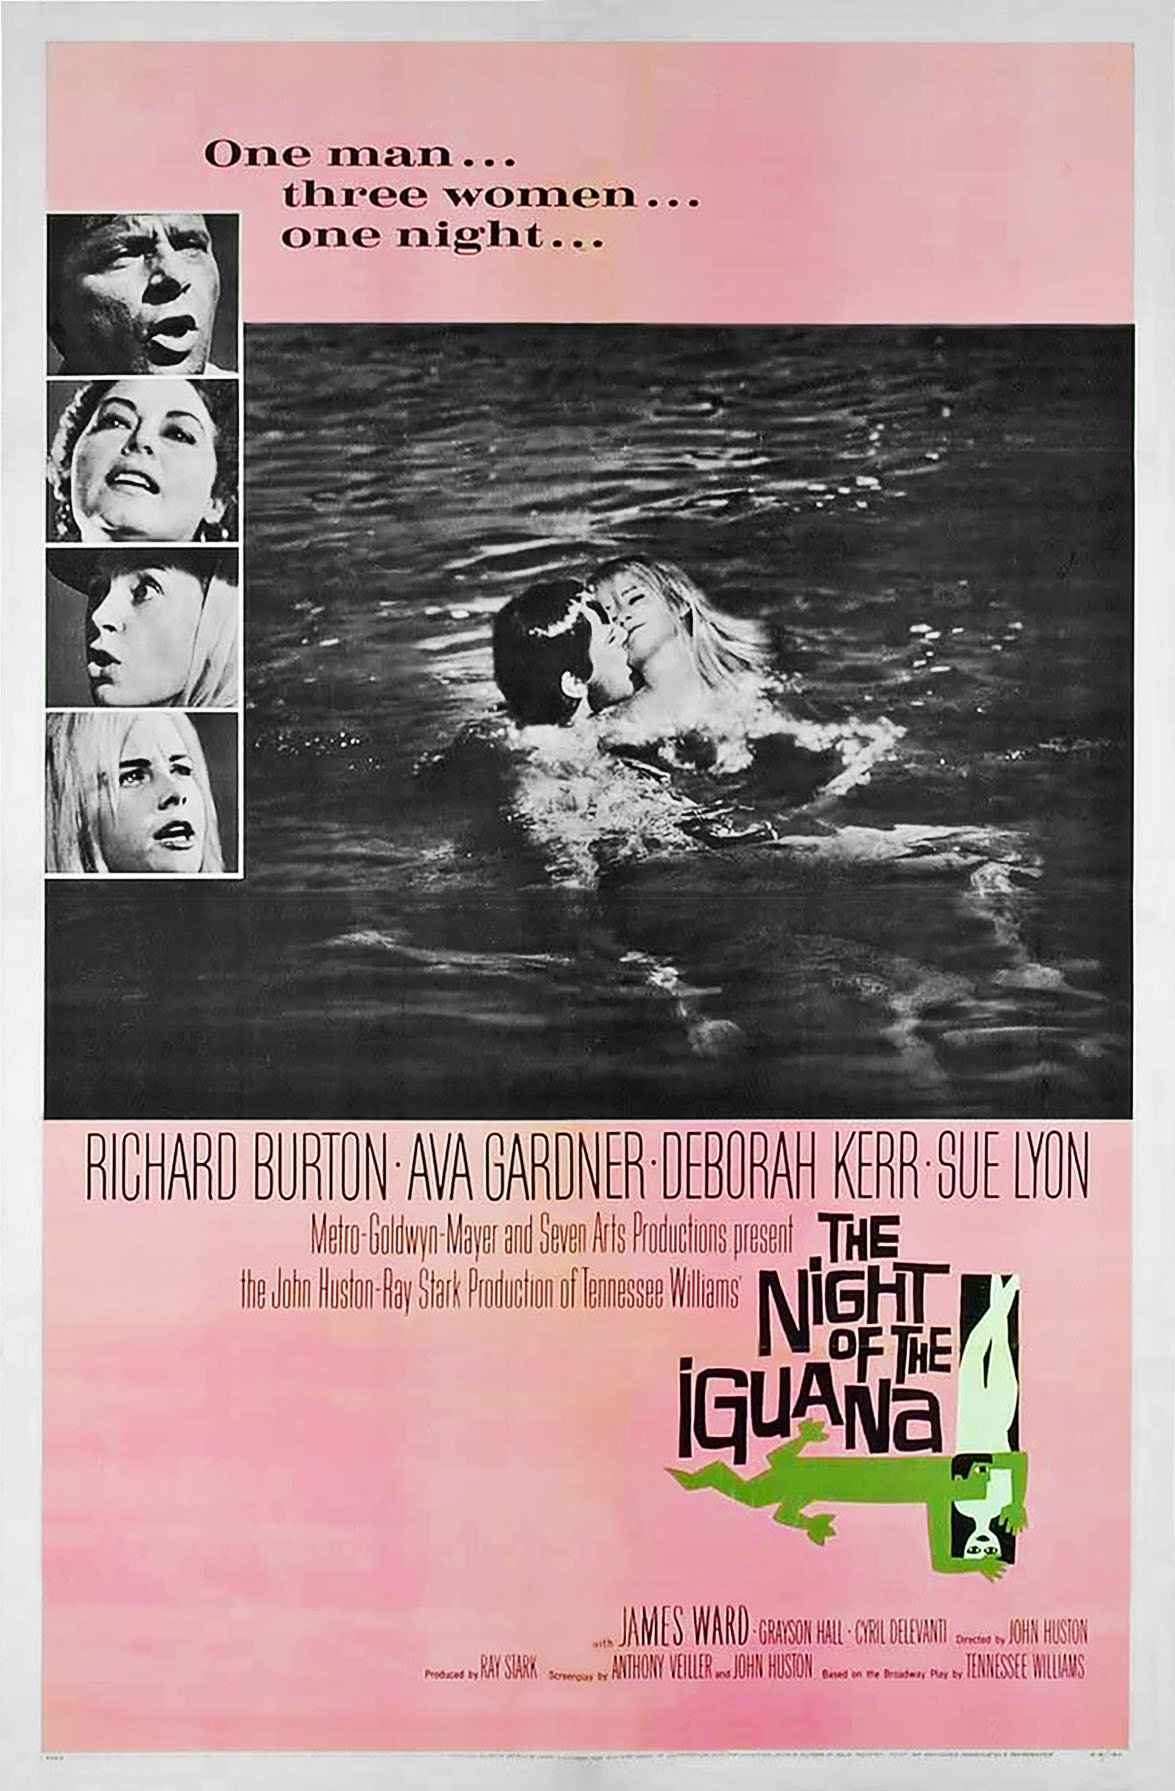 The Night of the Iguana Poster 1964